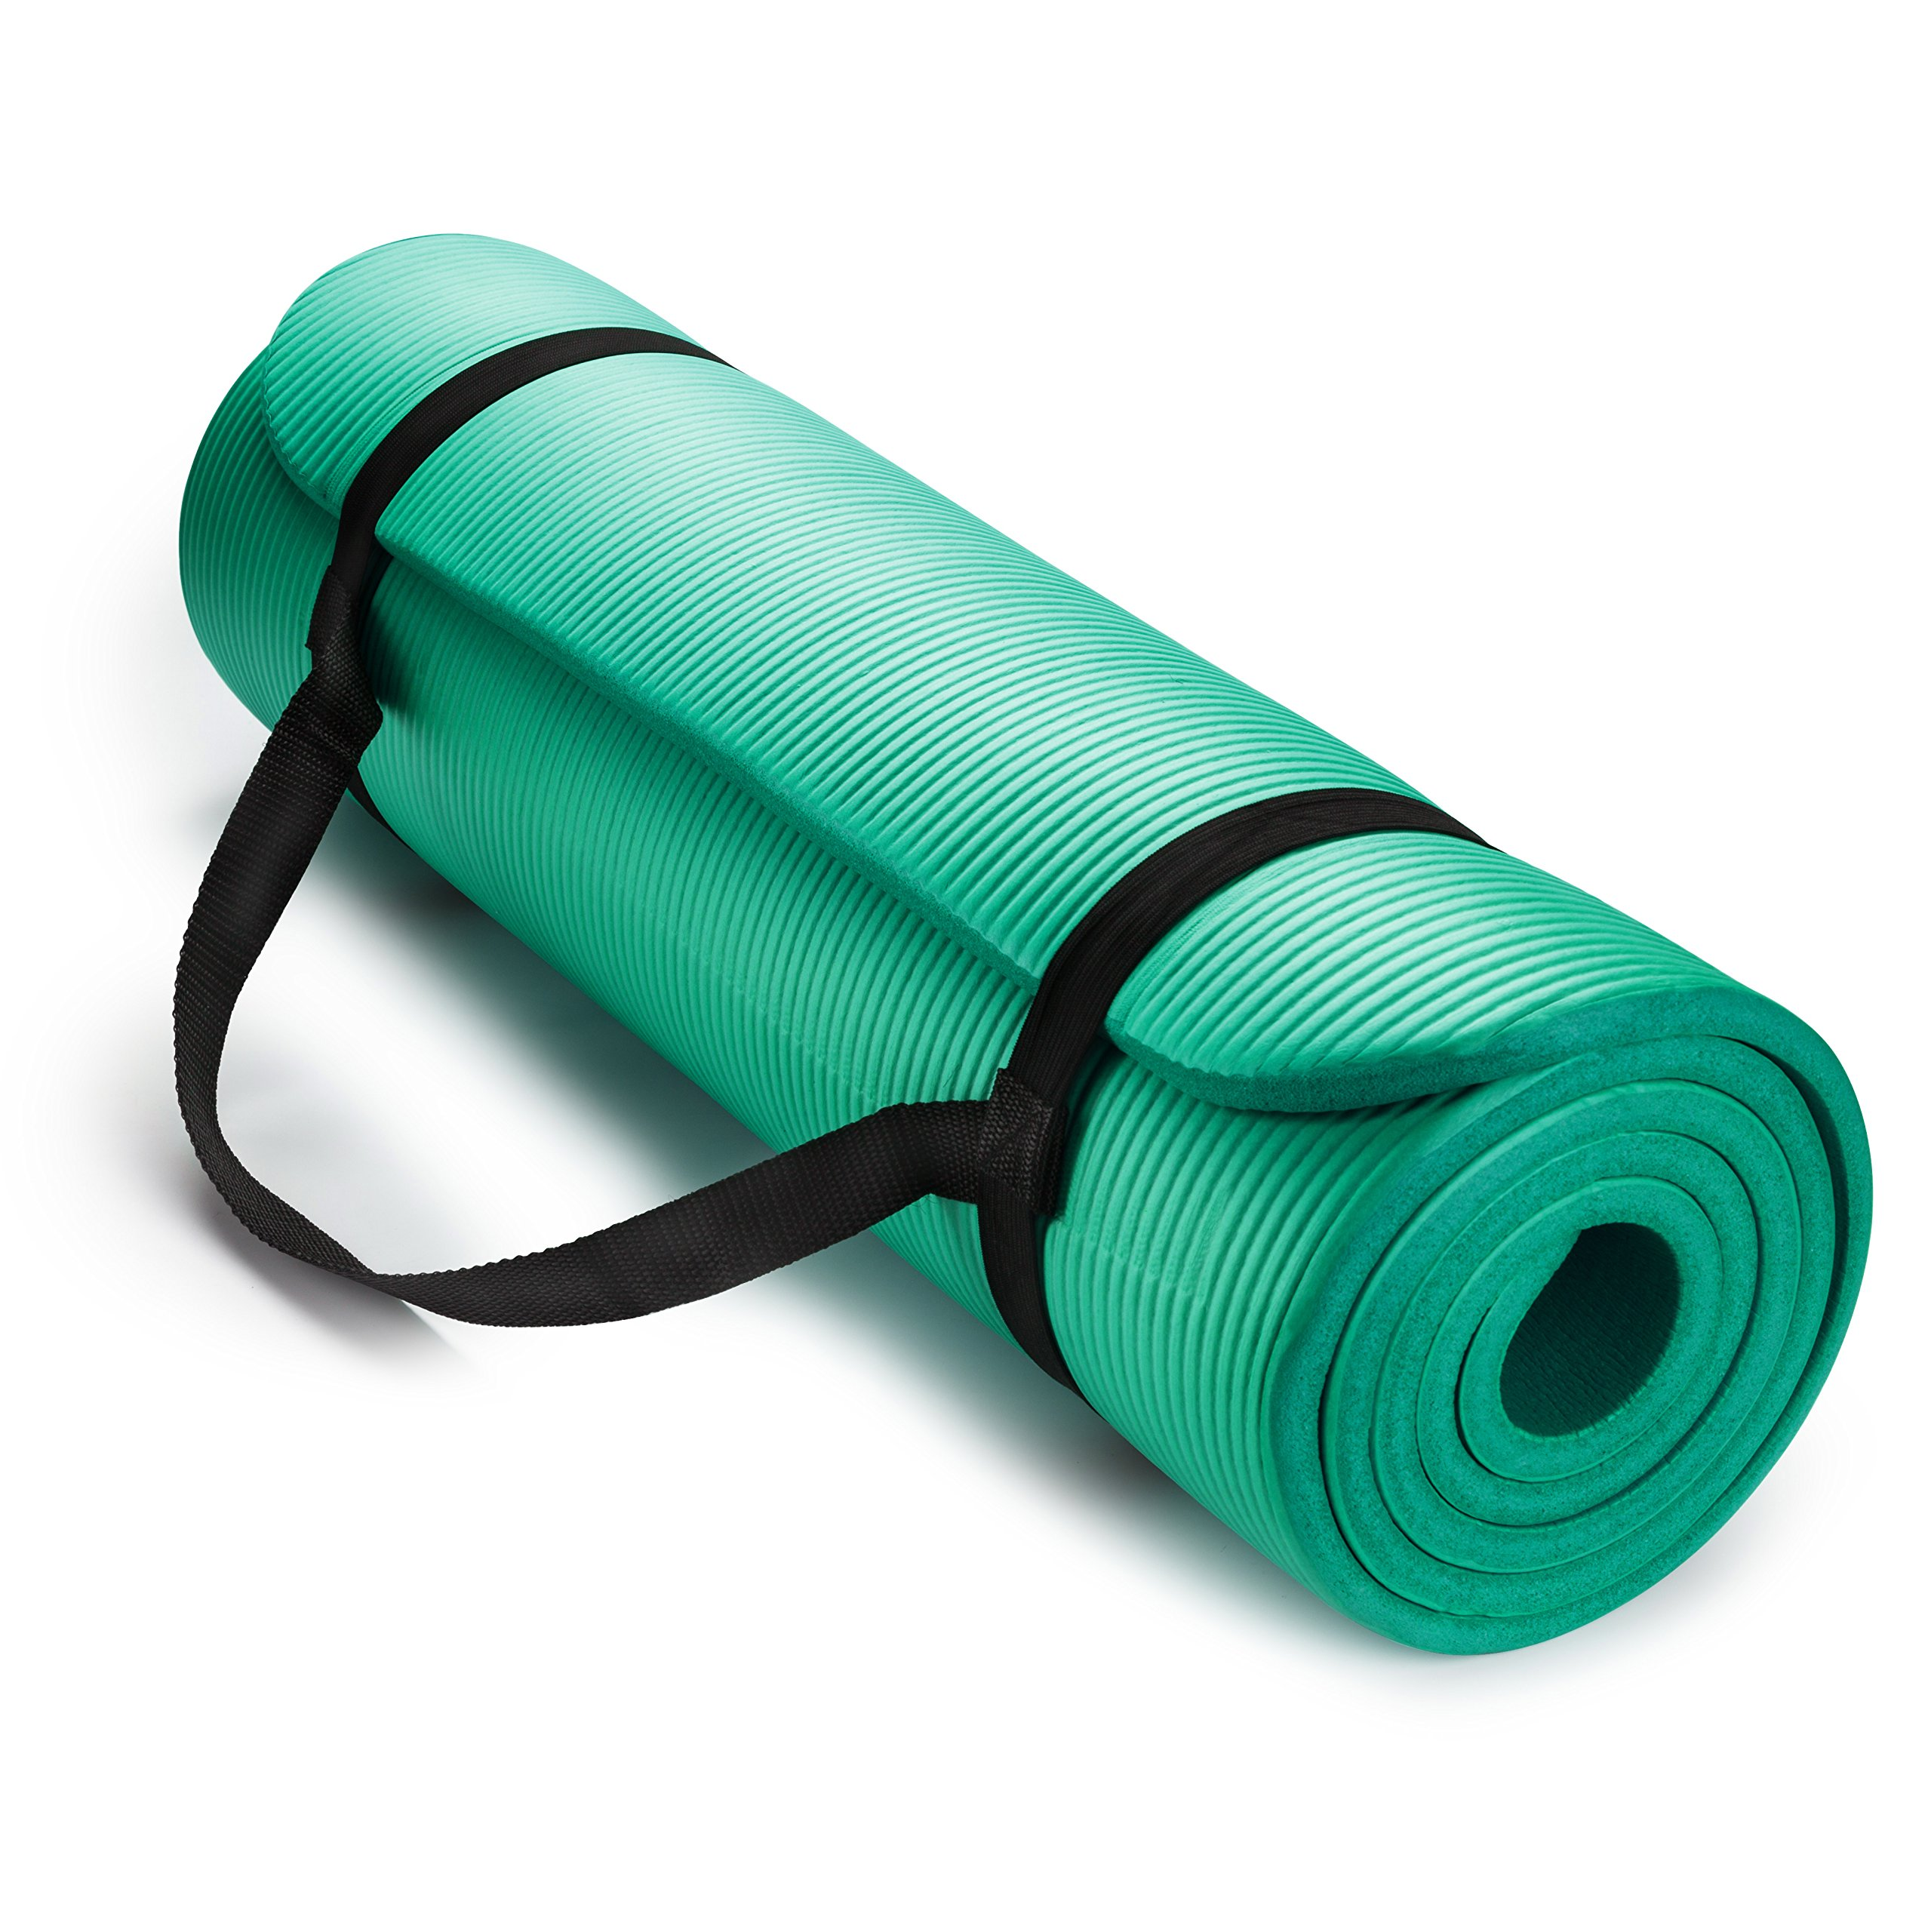 HemingWeigh 1/2-Inch Extra Thick High Density Exercise Yoga Mat with Carrying Strap (Teal)